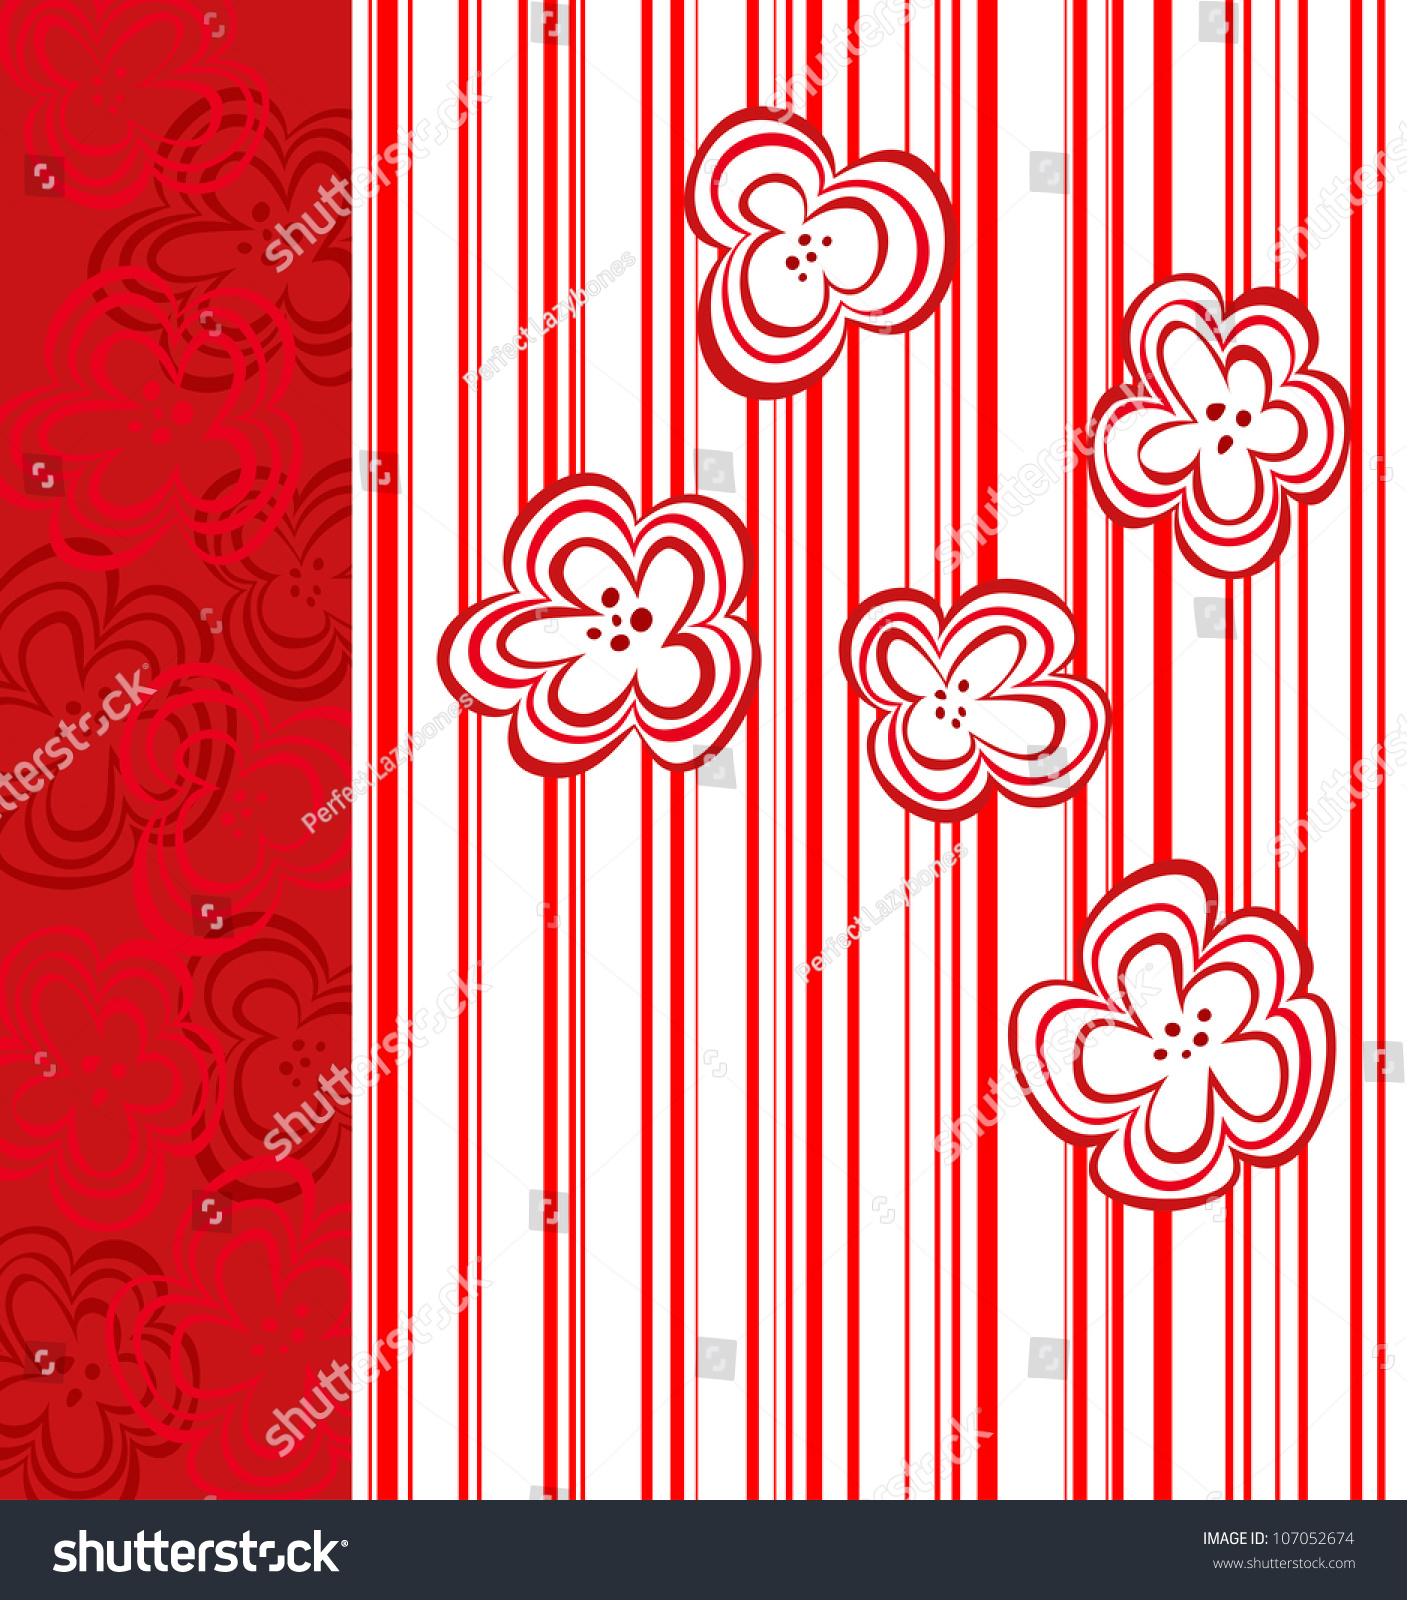 Red Book Cover Pattern : Abstract flower design for book cover gift card or